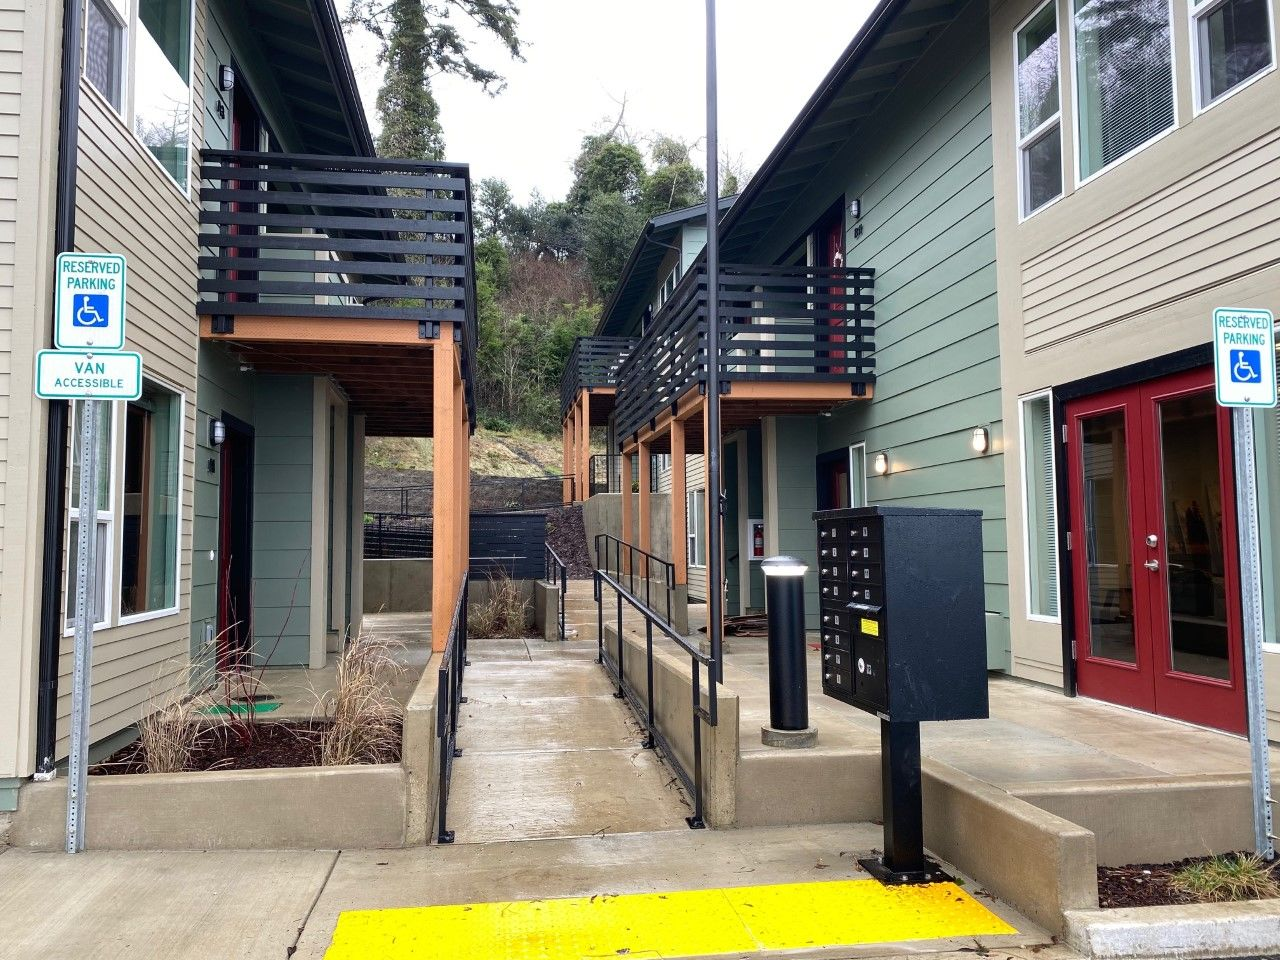 Oregon Coast Community Action has built Deer Springs Terrace to help at-risk homeless veterans get back on their feet, Jan. 23, 2020. (SBG)